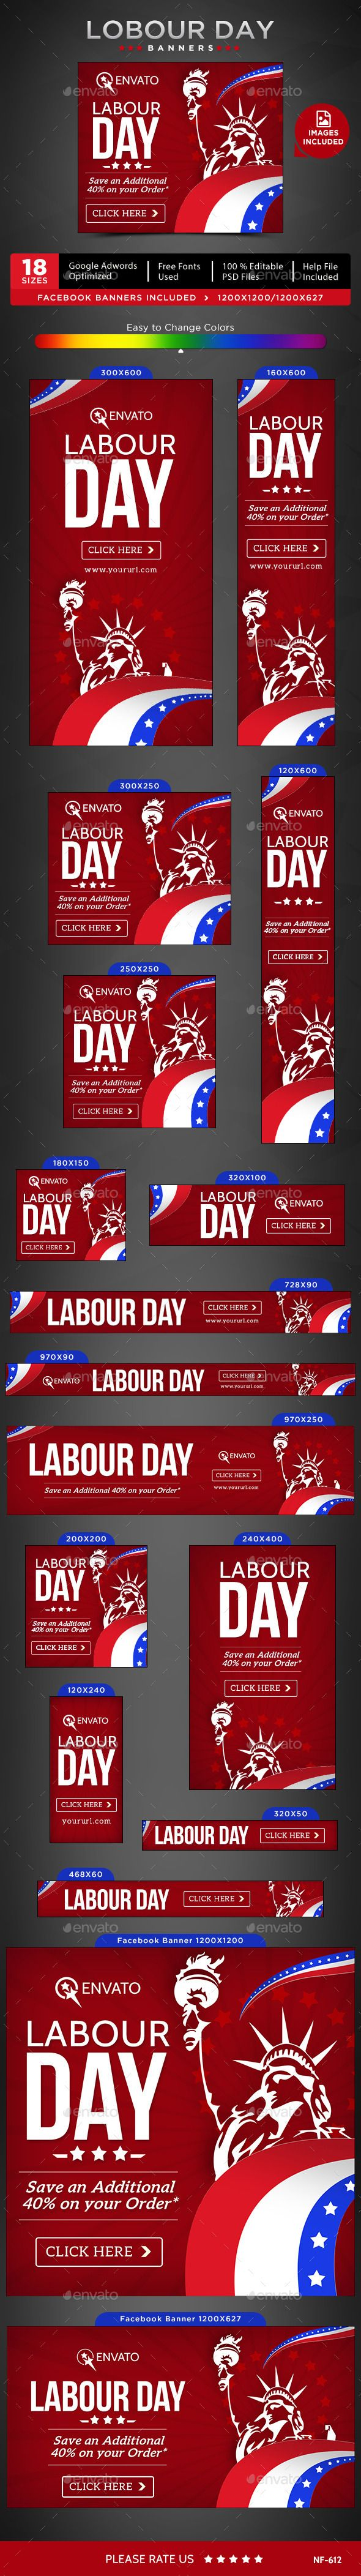 Labour Day Sale Banners Template #design #ads Download: http://graphicriver.net/item/labour-day-sale-banners/12723344?ref=ksioks